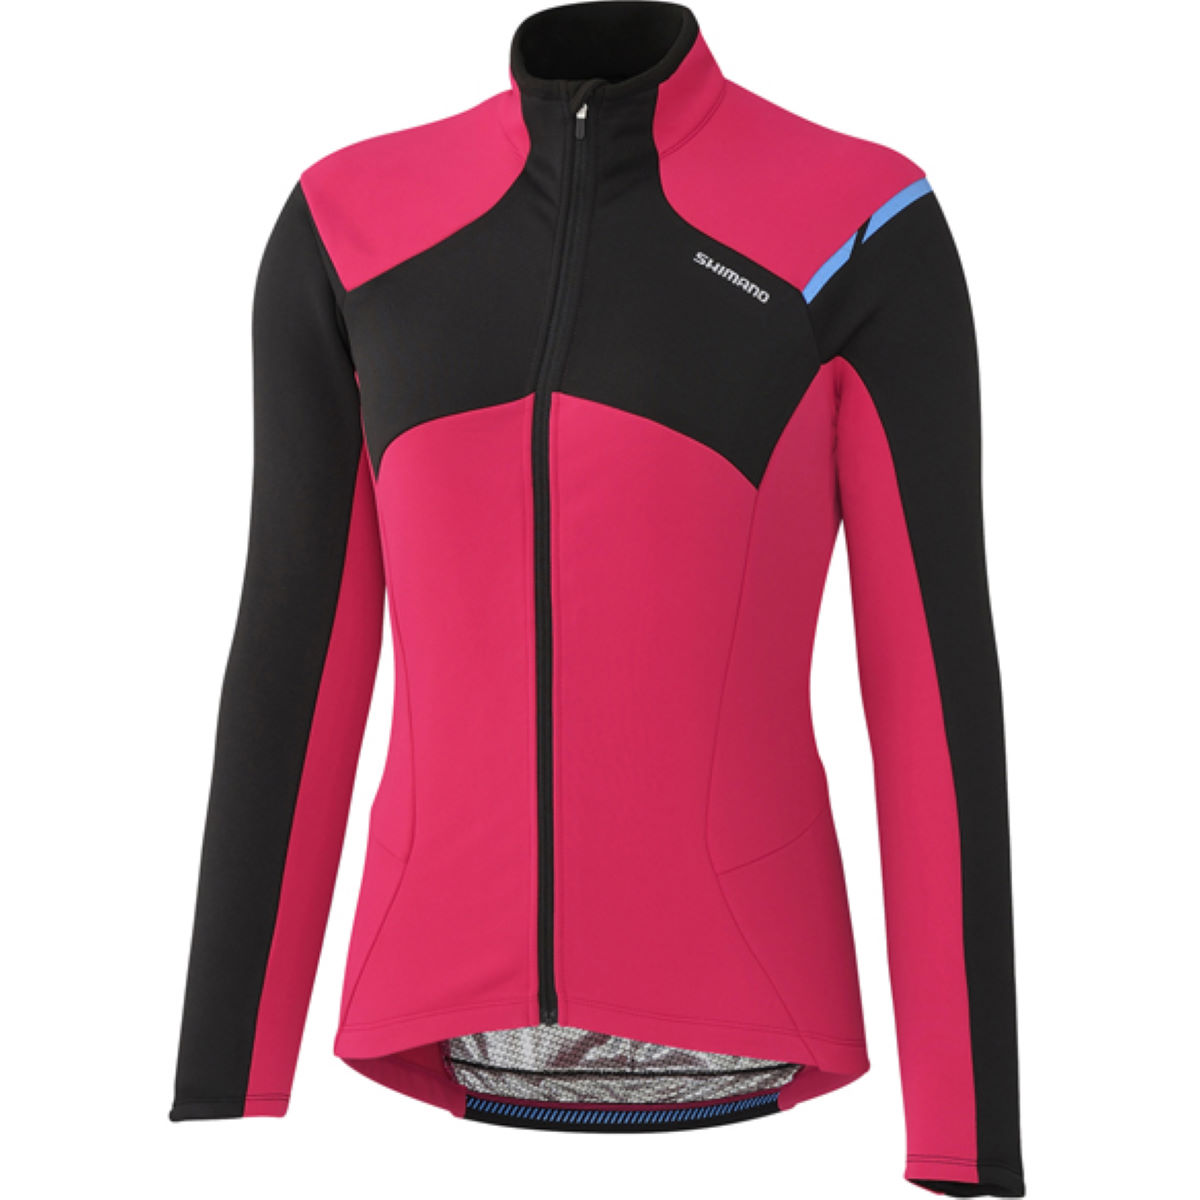 Maillot Femme Shimano Thermal (hiver) - Large Rose